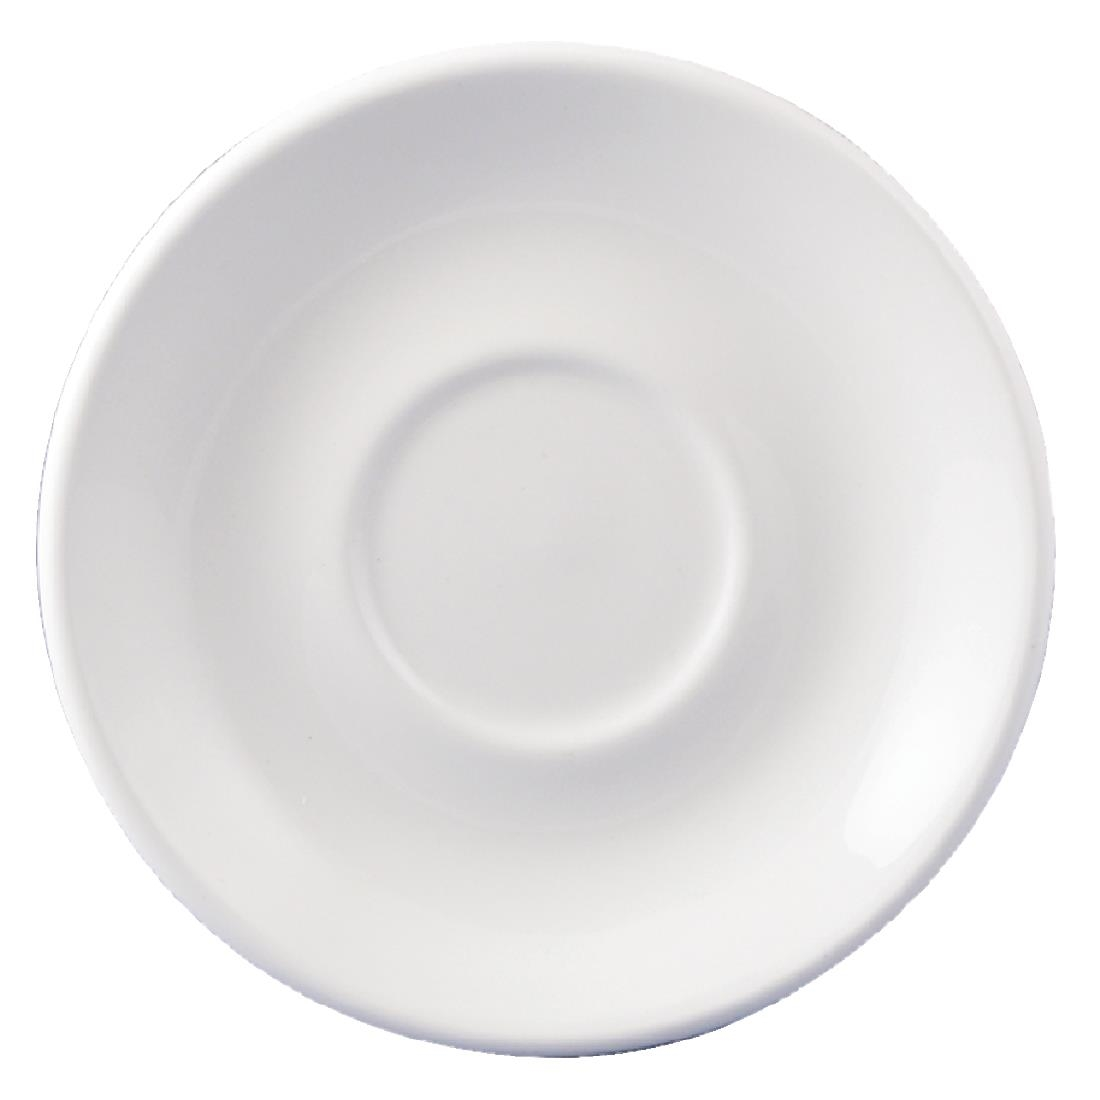 Image of Dudson Classic Tea Cup Saucers 149mm (Pack of 36) Pack of 36